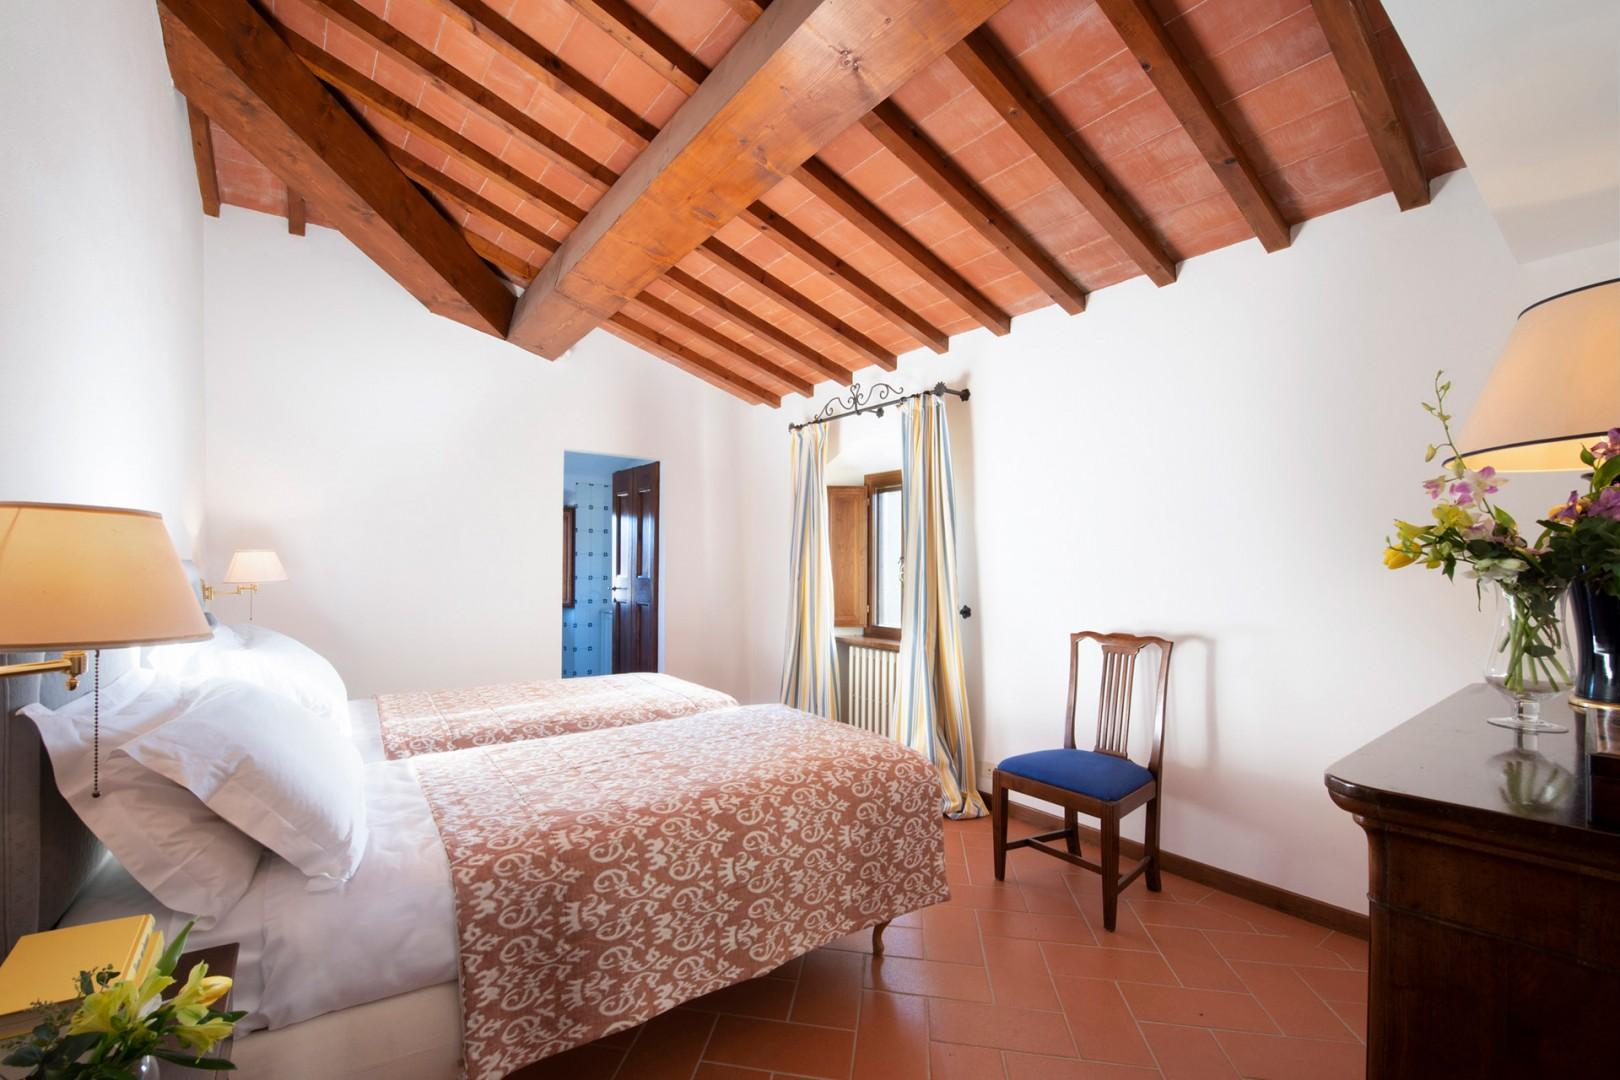 Bedroom 3 has two beds that can be joined together and an en suite bathroom.